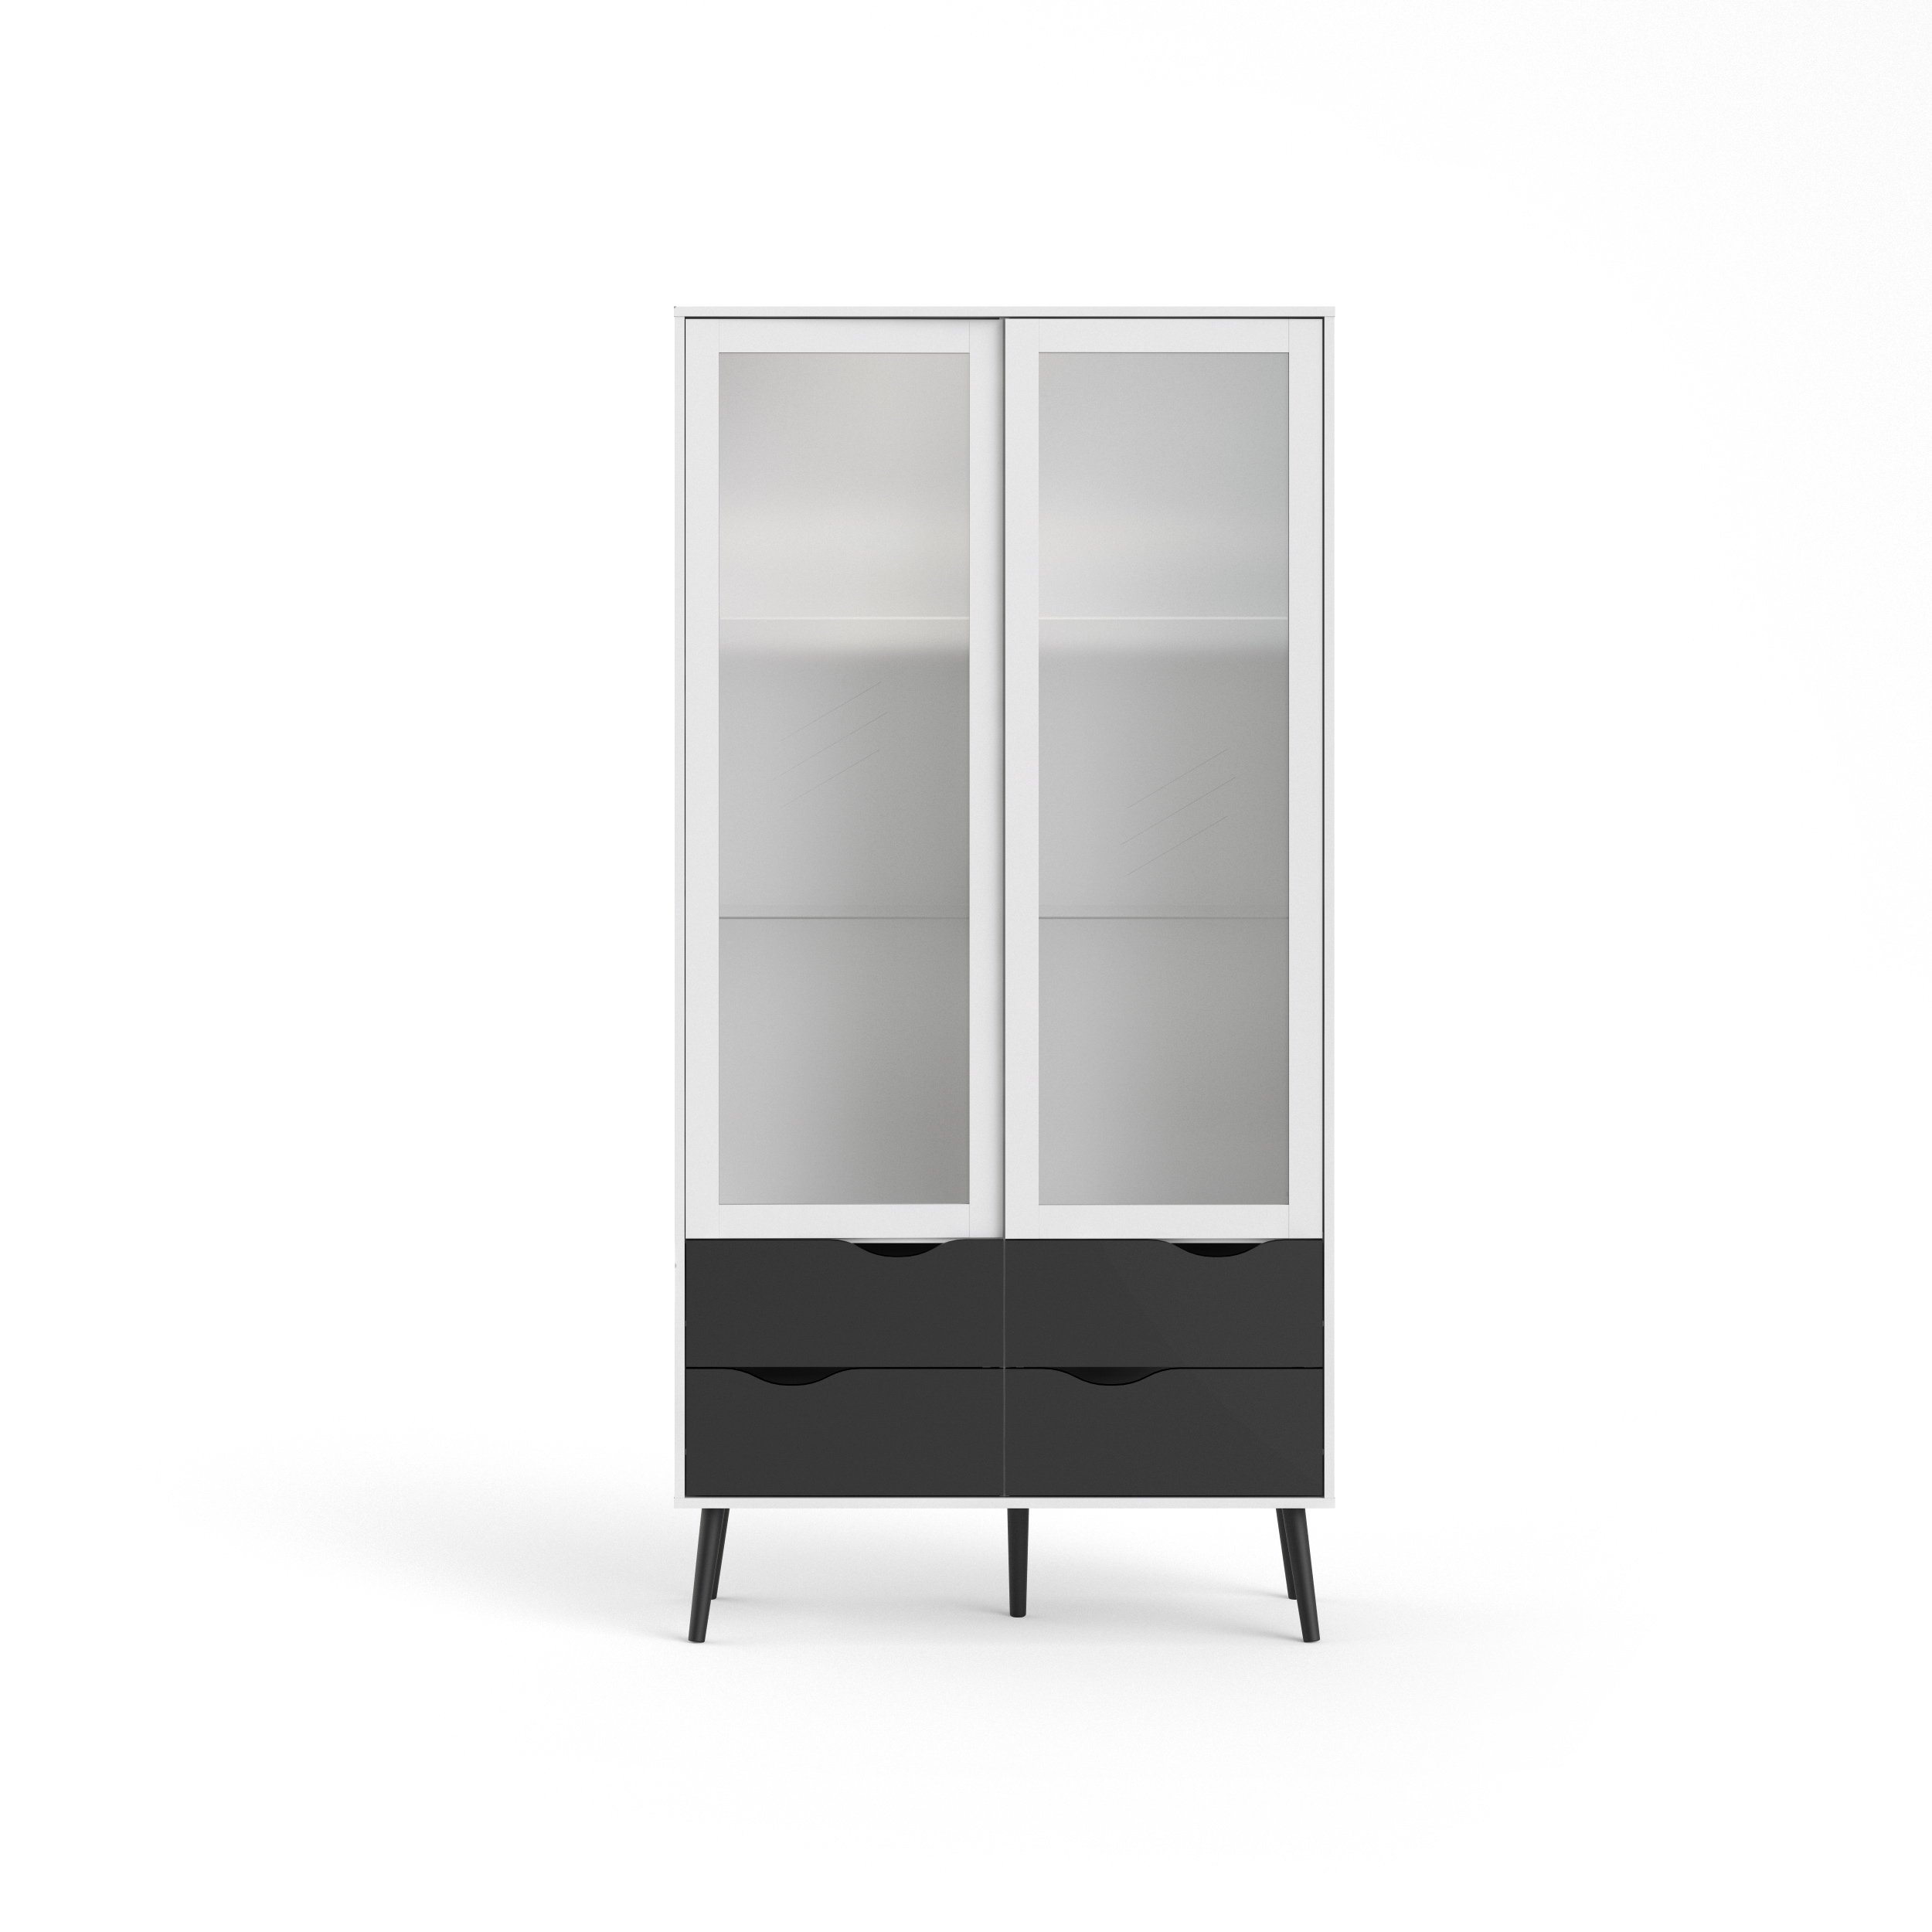 Tvilum 7546249gm Diana 4 Drawer and and 2 Door Glass China Cabinet, White/Black Matte